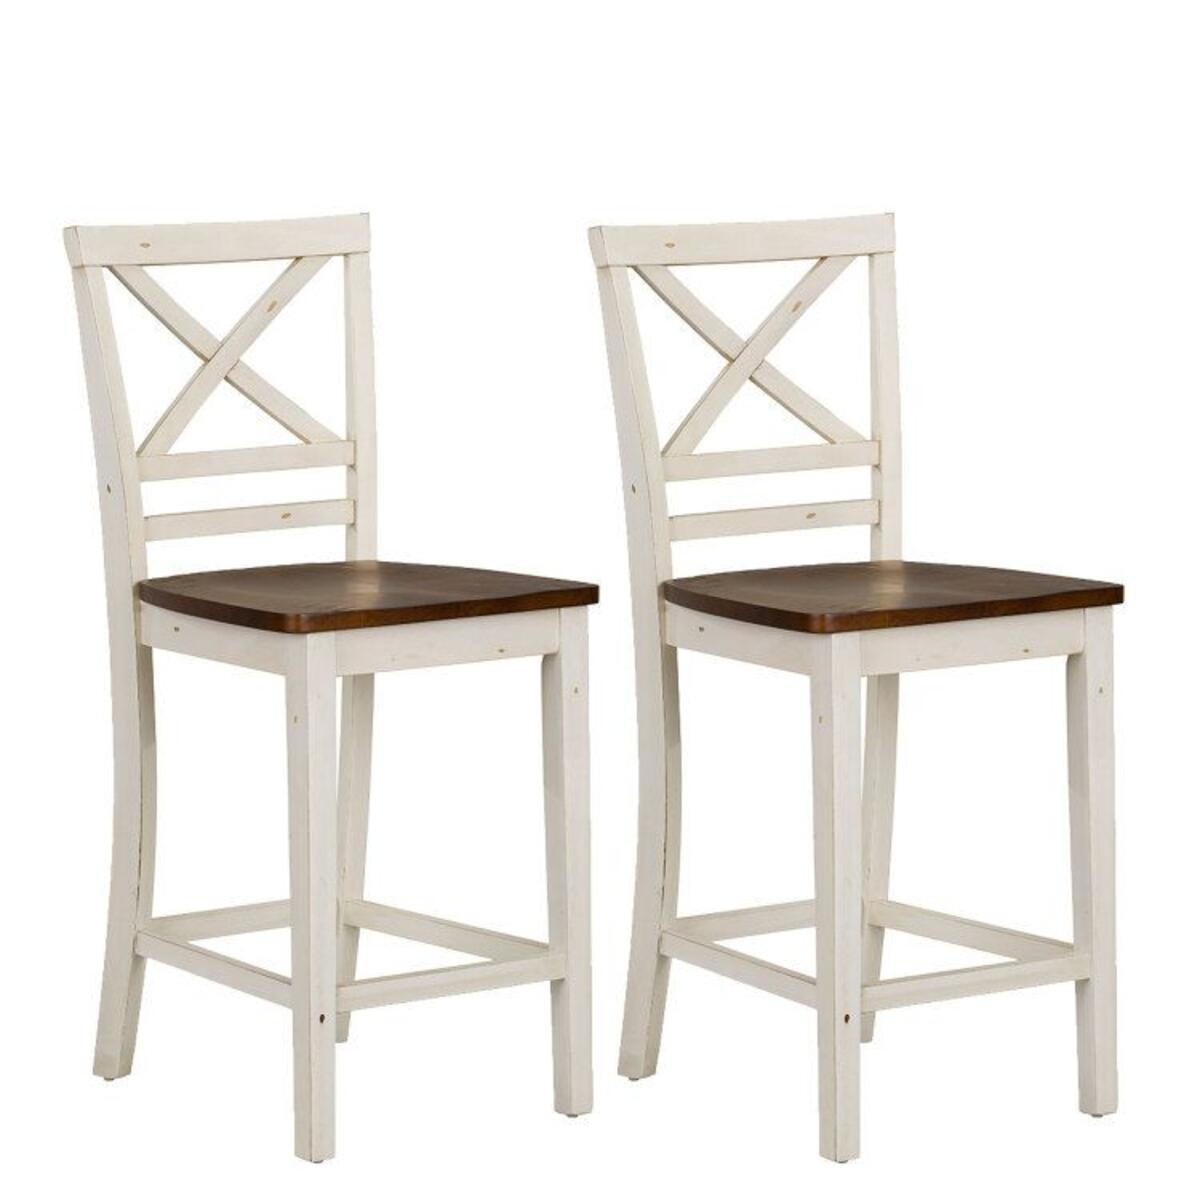 Amelia Two-Tone 2-Pack Counter Height Barstools